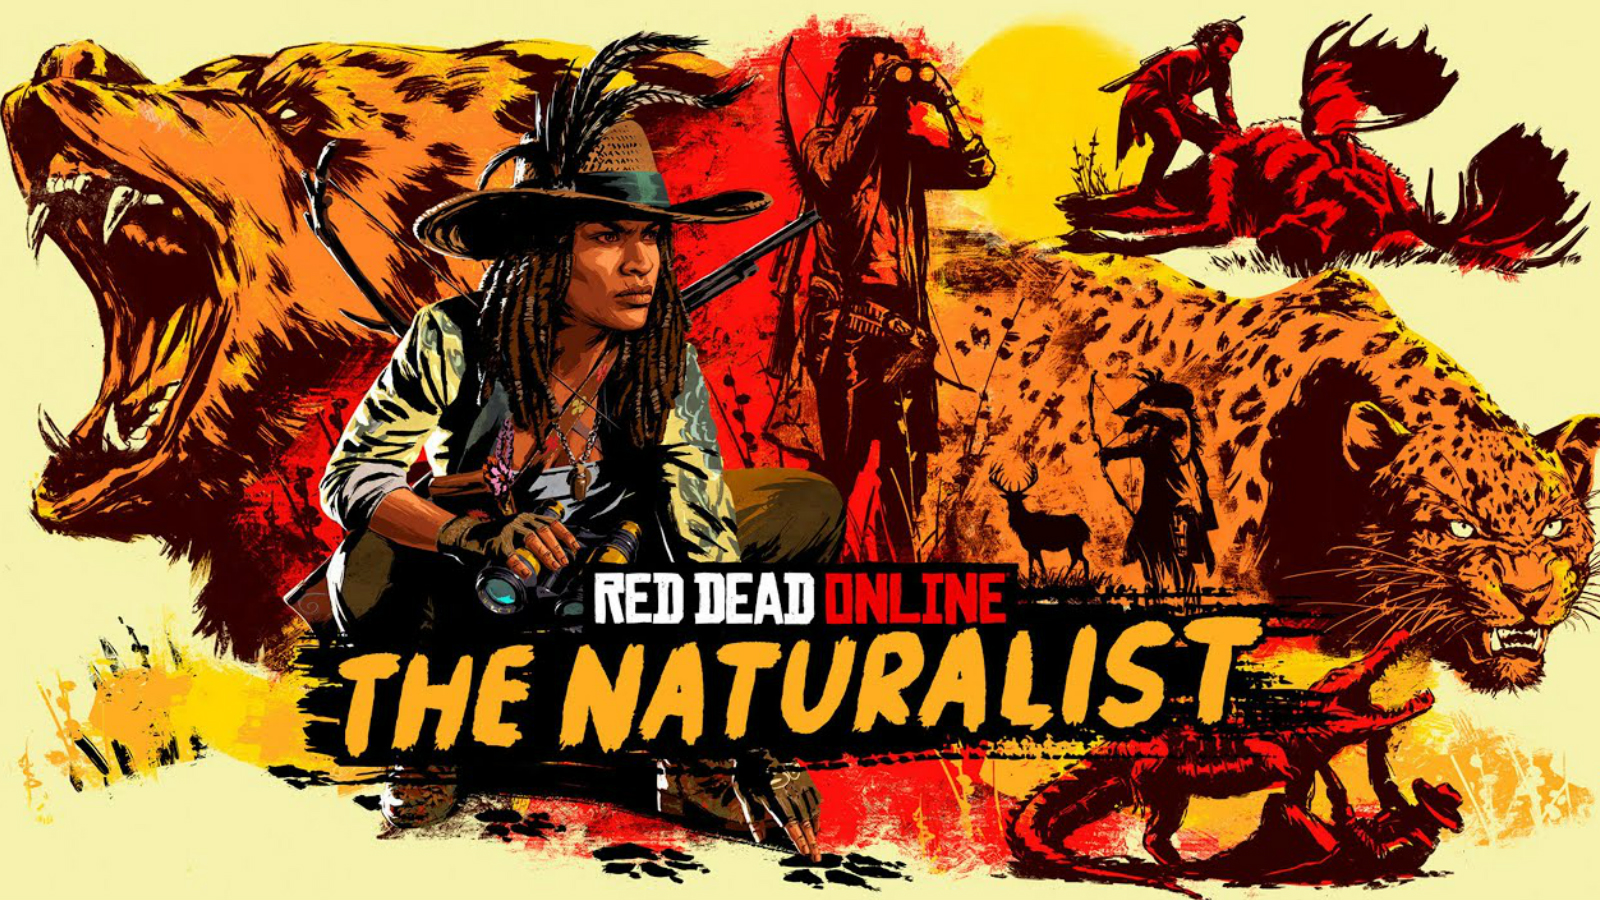 The Naturalist in Red Dead Online